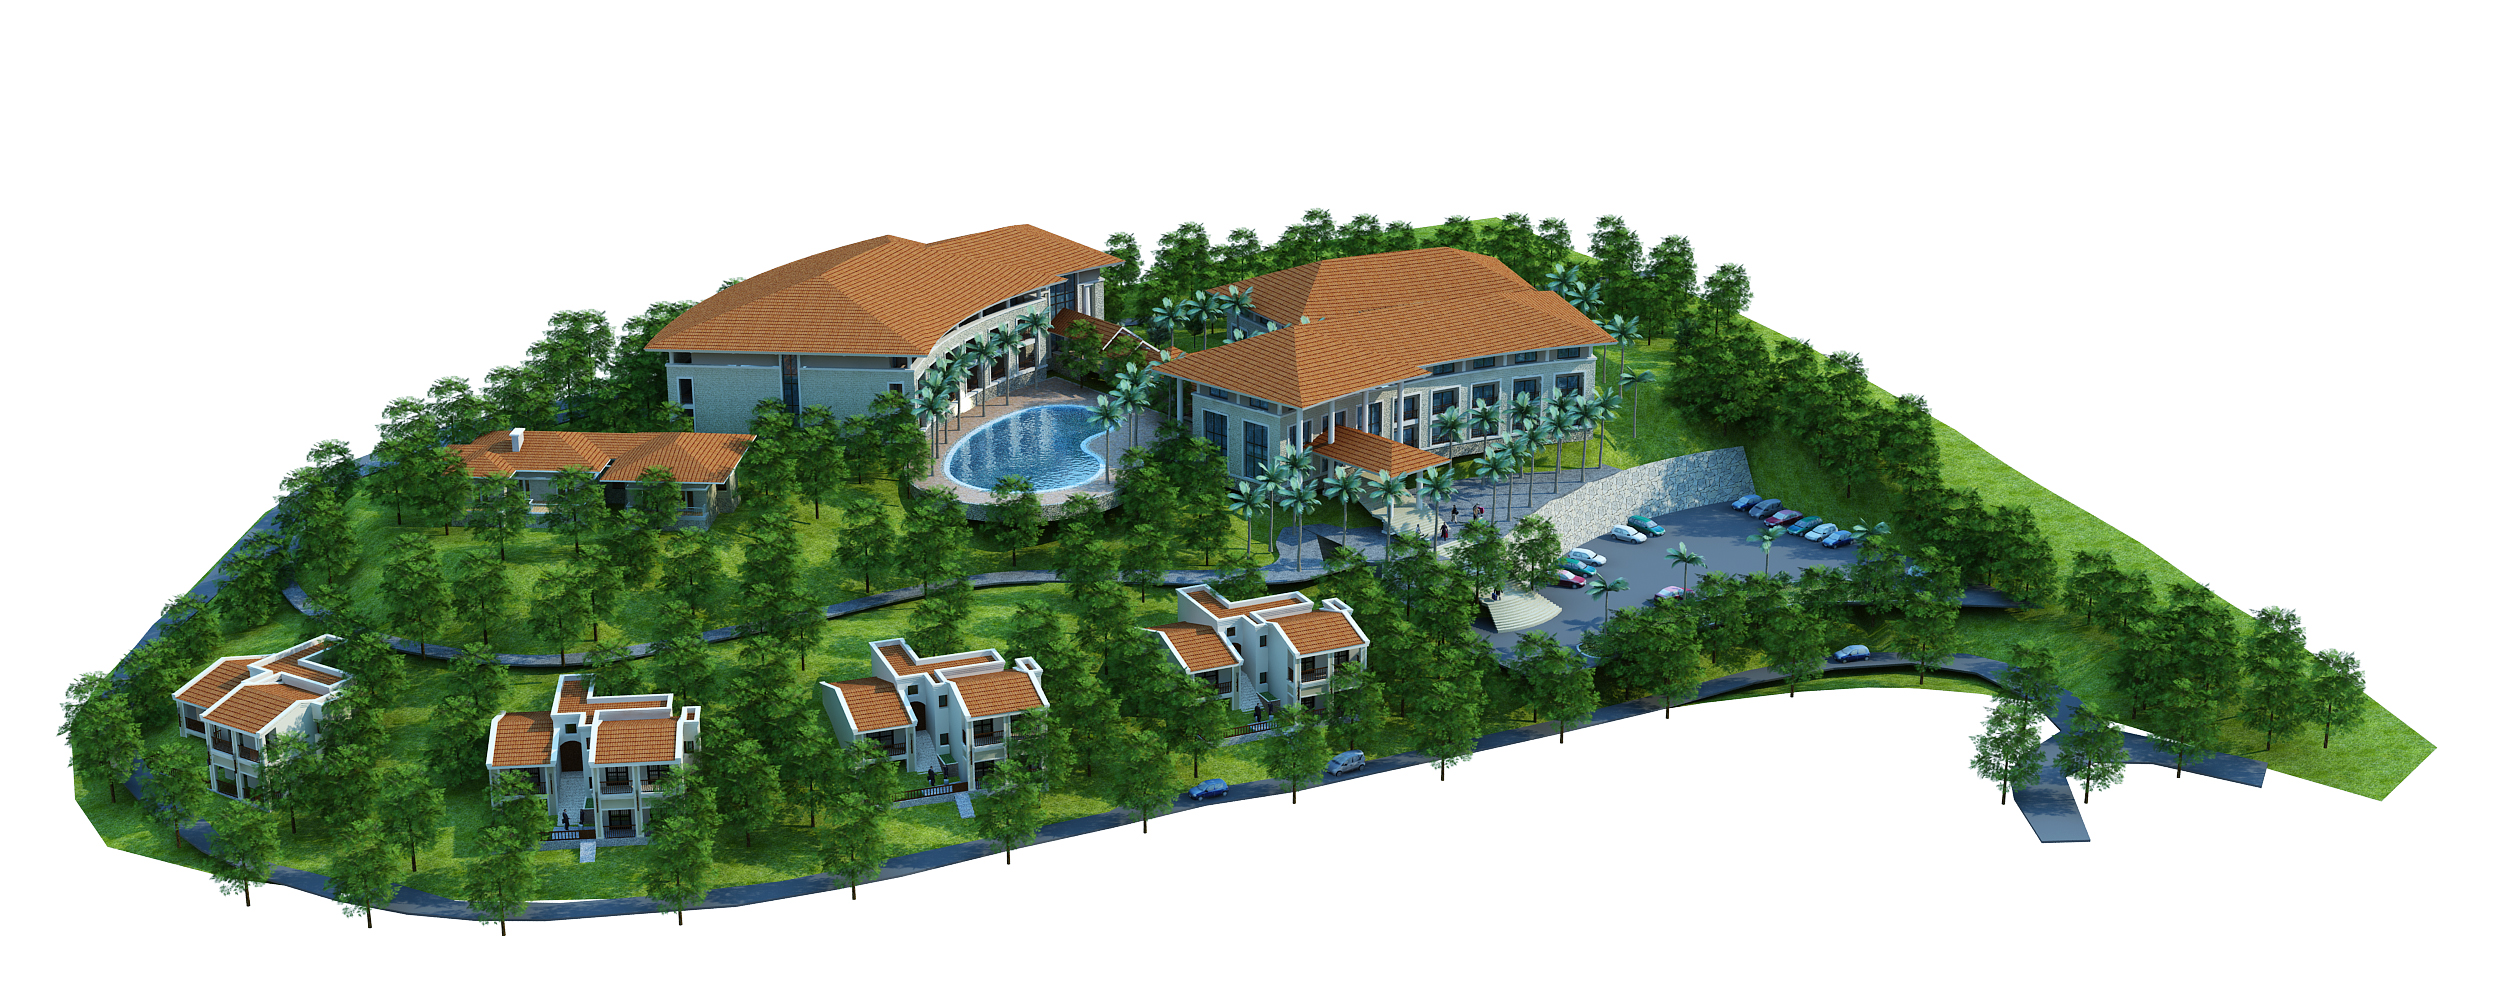 moutain resort hotel 3d model max other 159068